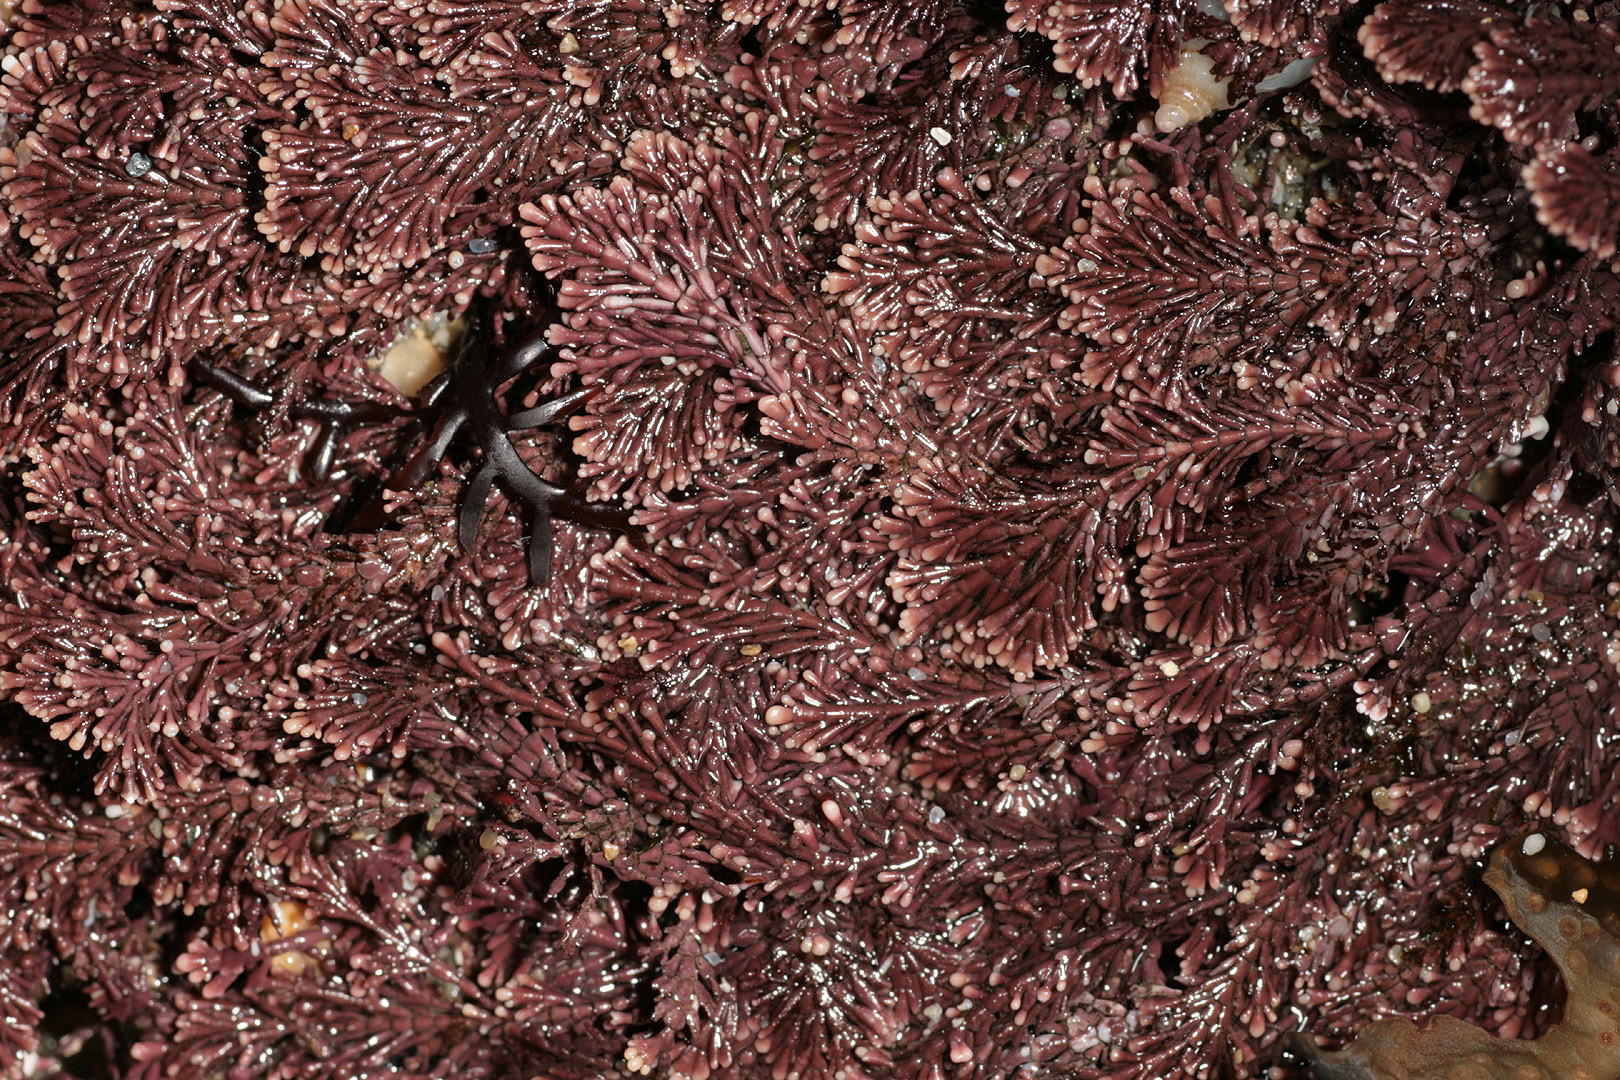 Image of common coral weed